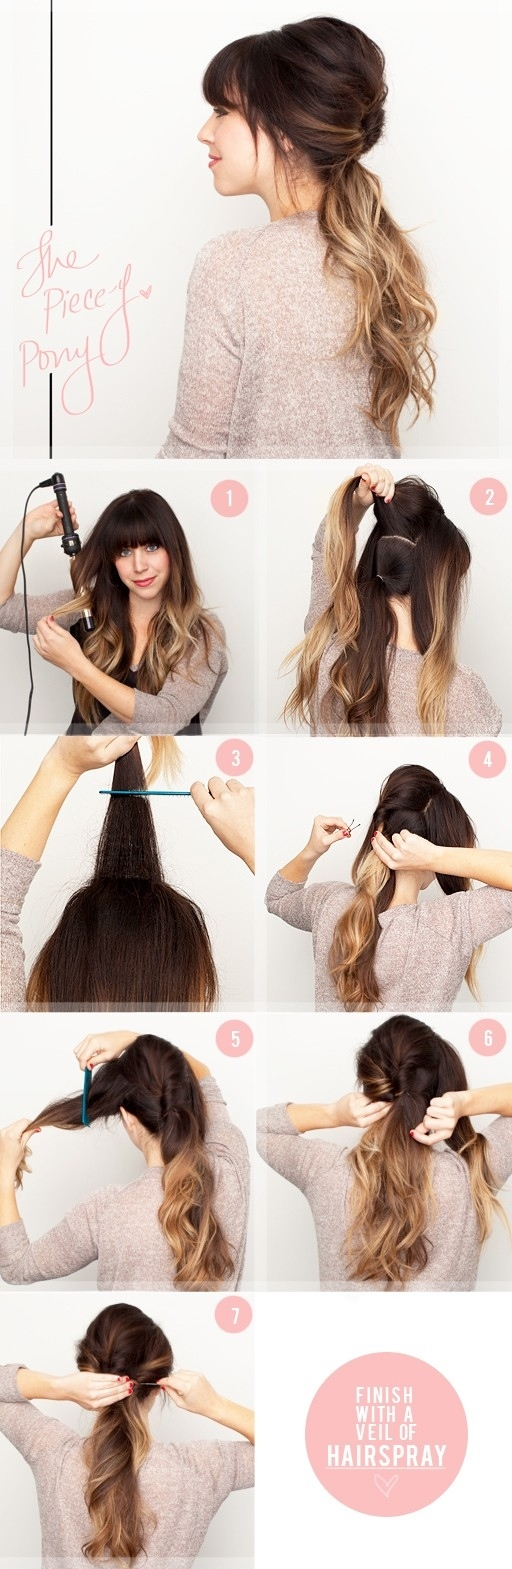 25 ways to style beautiful summer hairstyles - hairstyles weekly